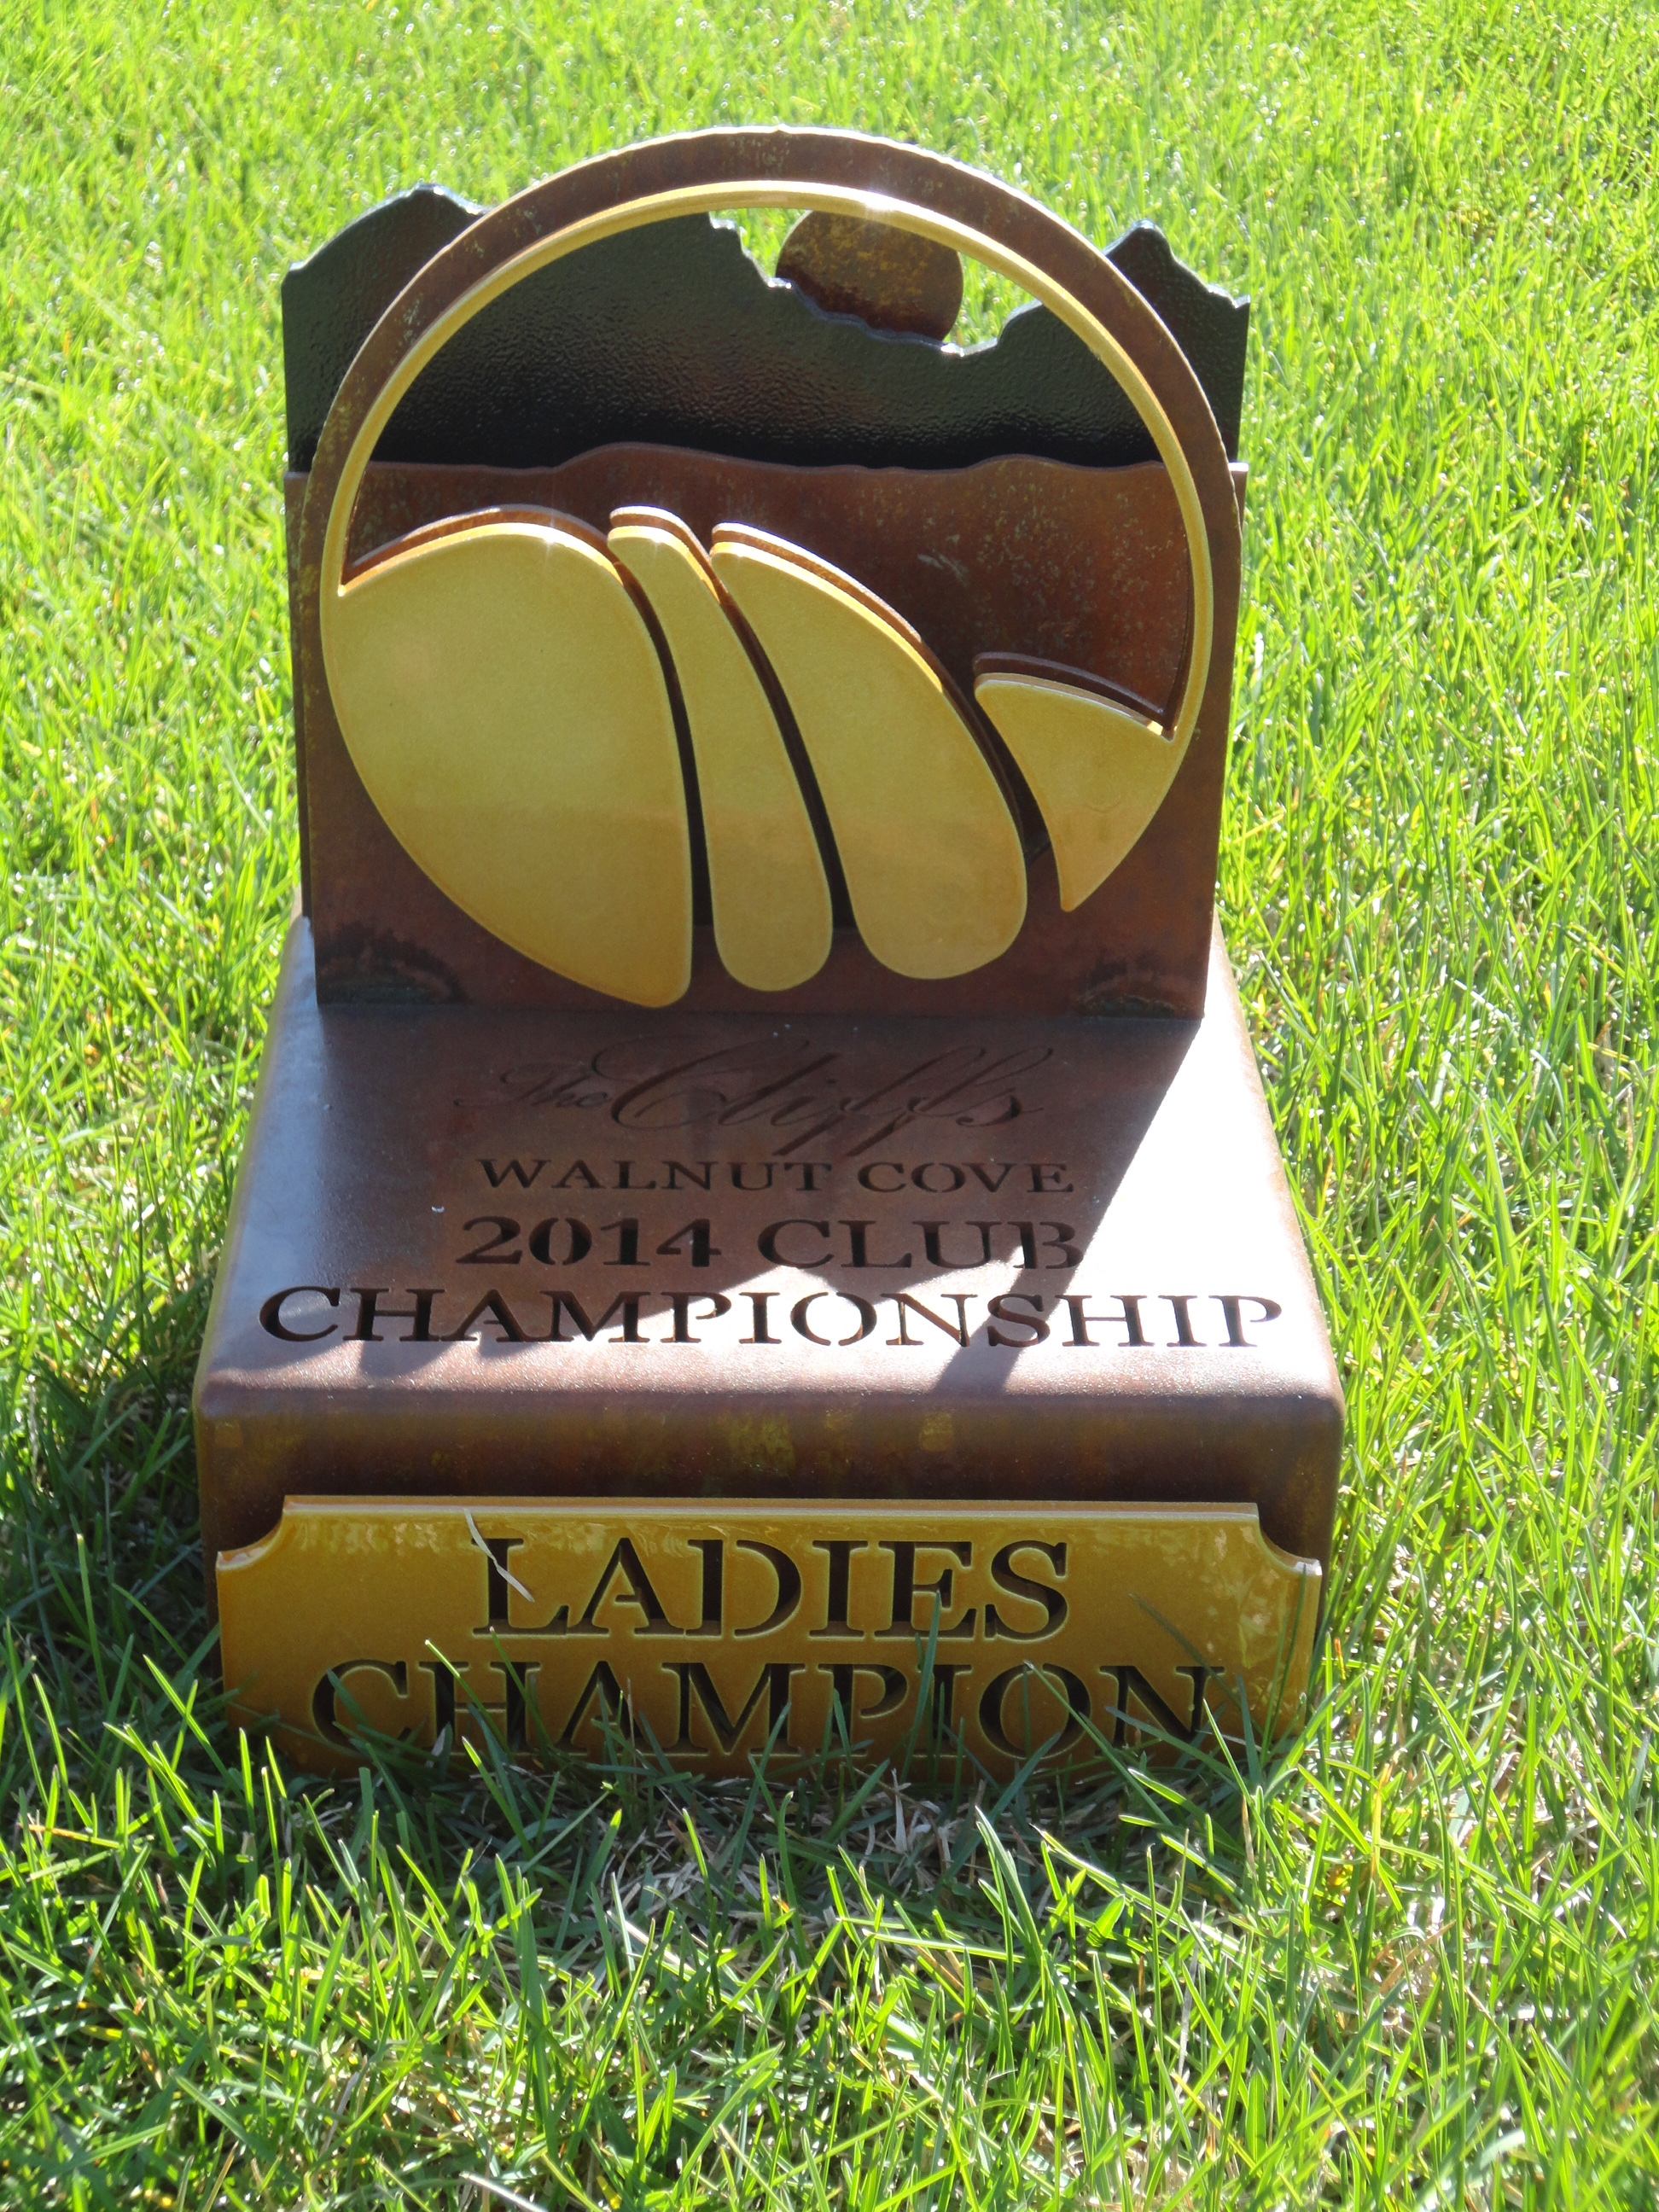 WALNUT COVE -Championship Golf Trophy